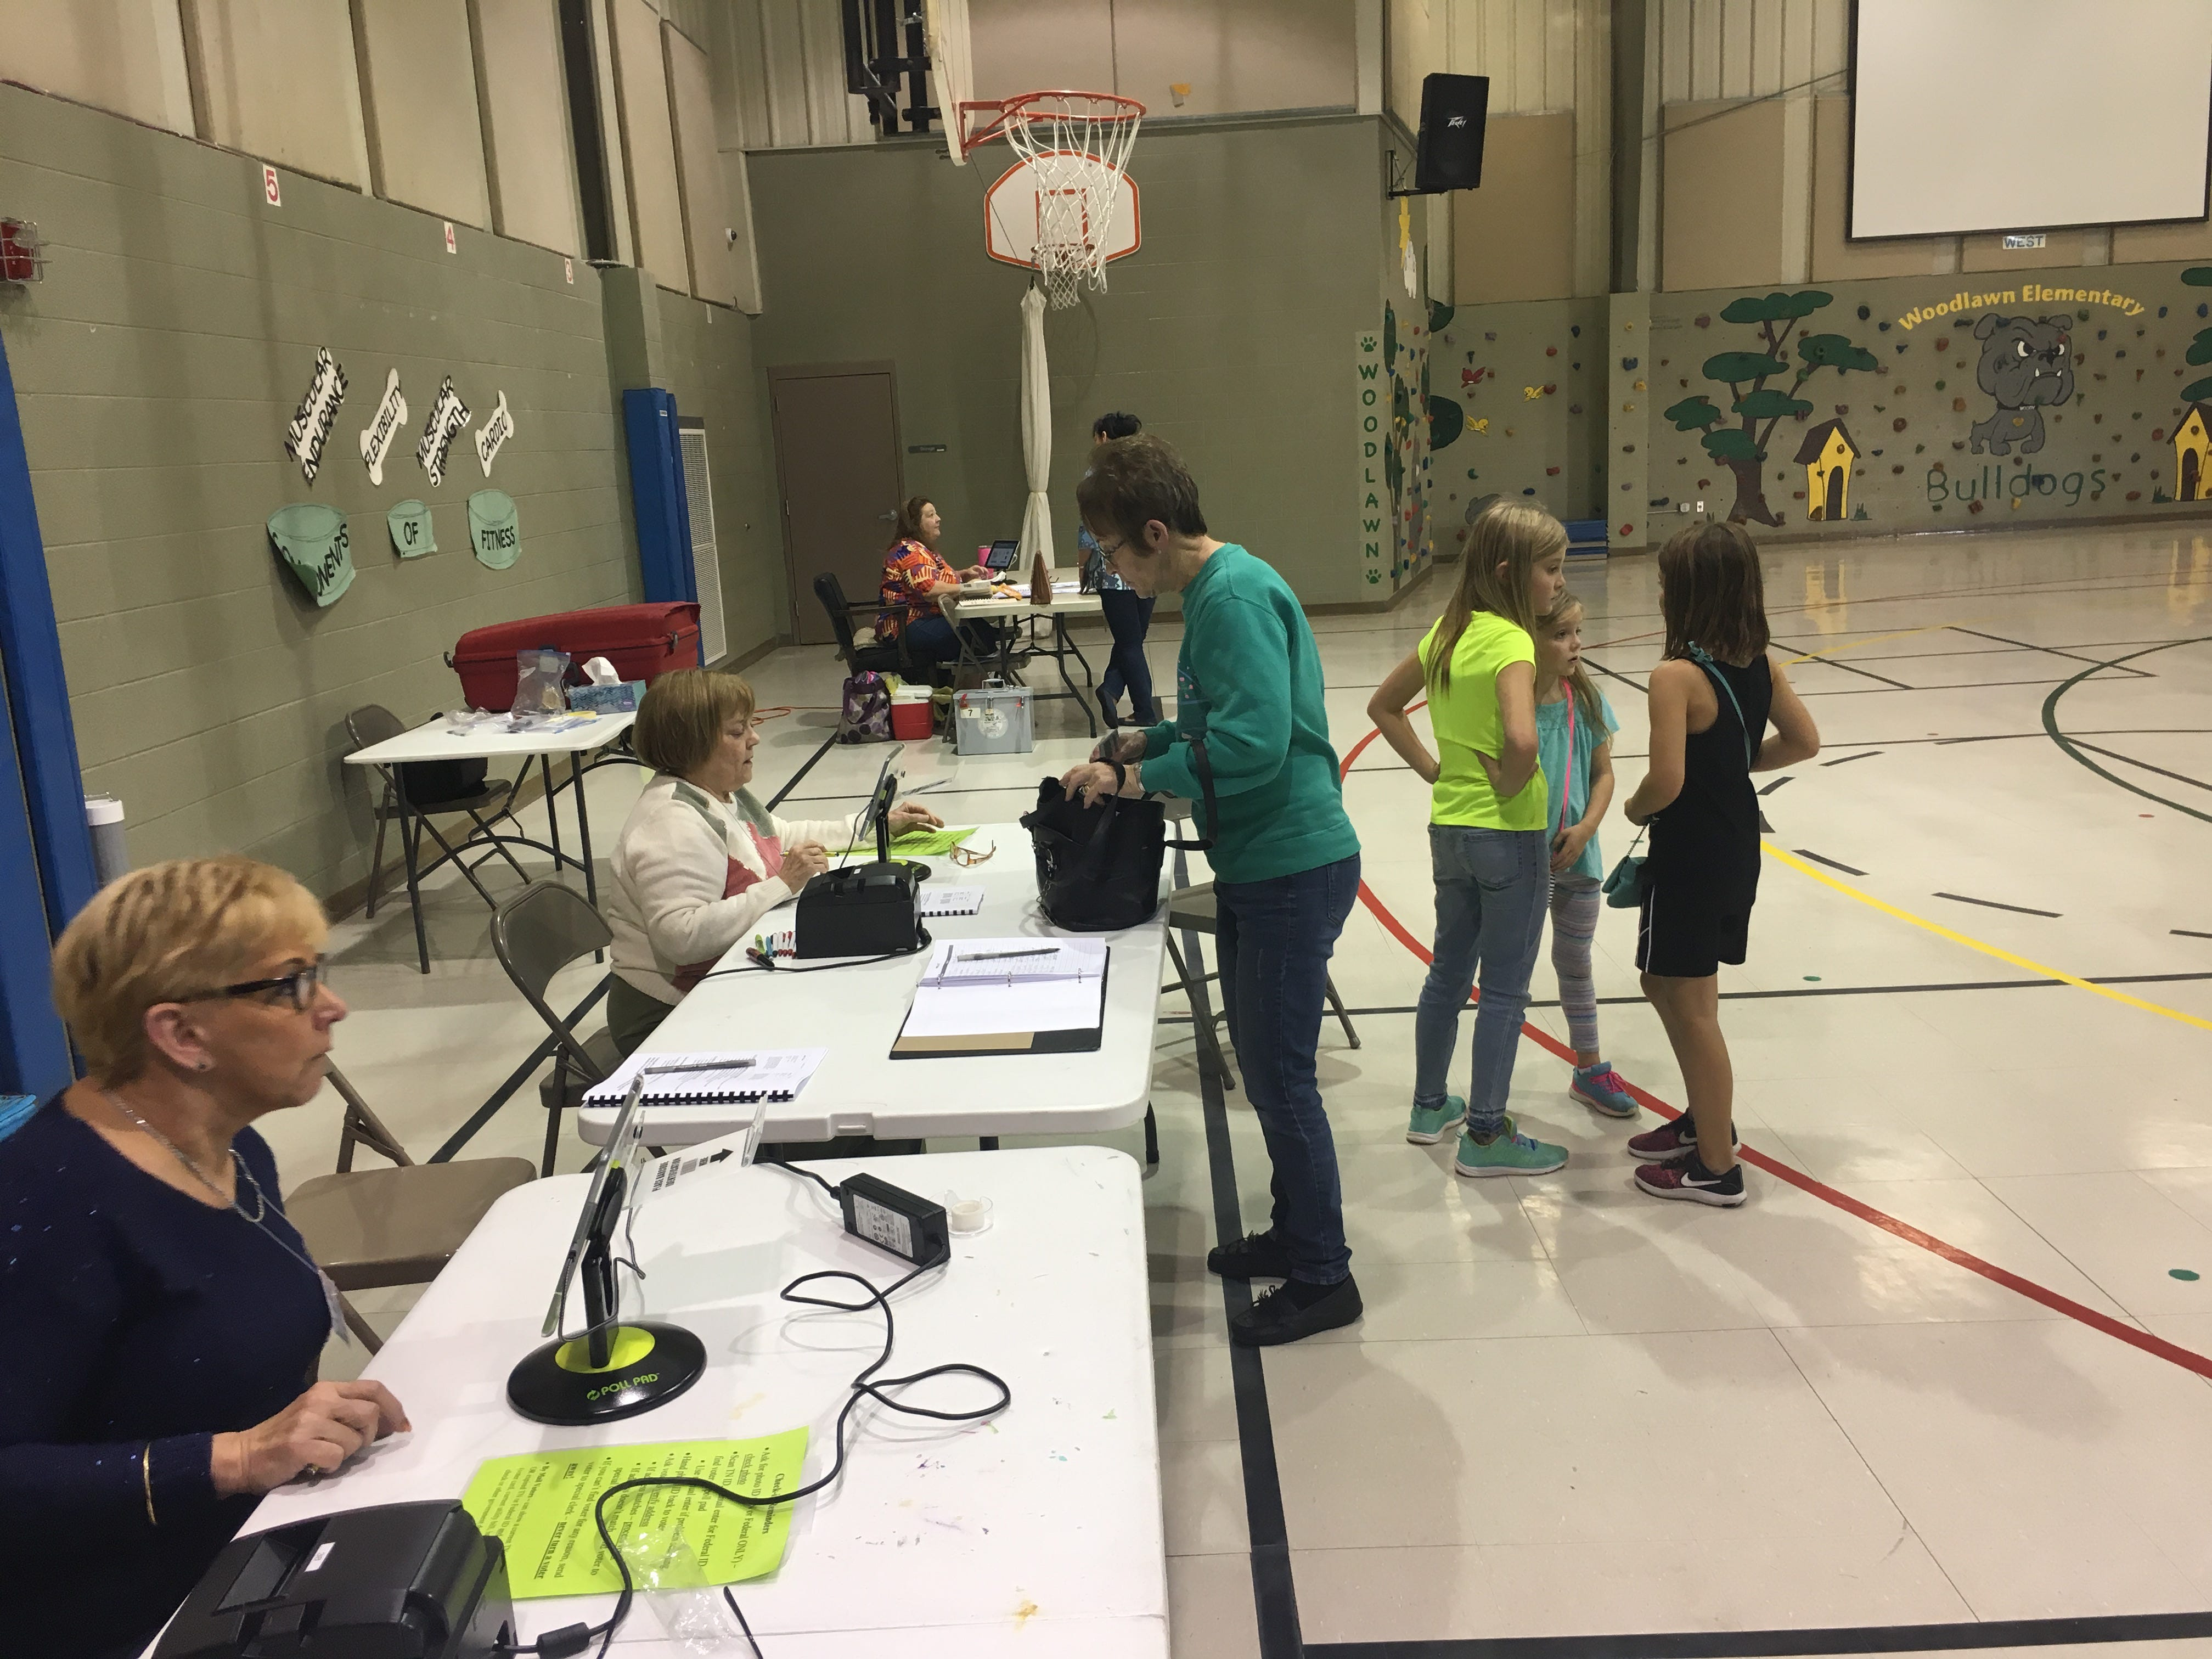 Kids chat while parents sign in to vote at Woodlawn Elementary on Tuesday, Nov. 6, 2018.